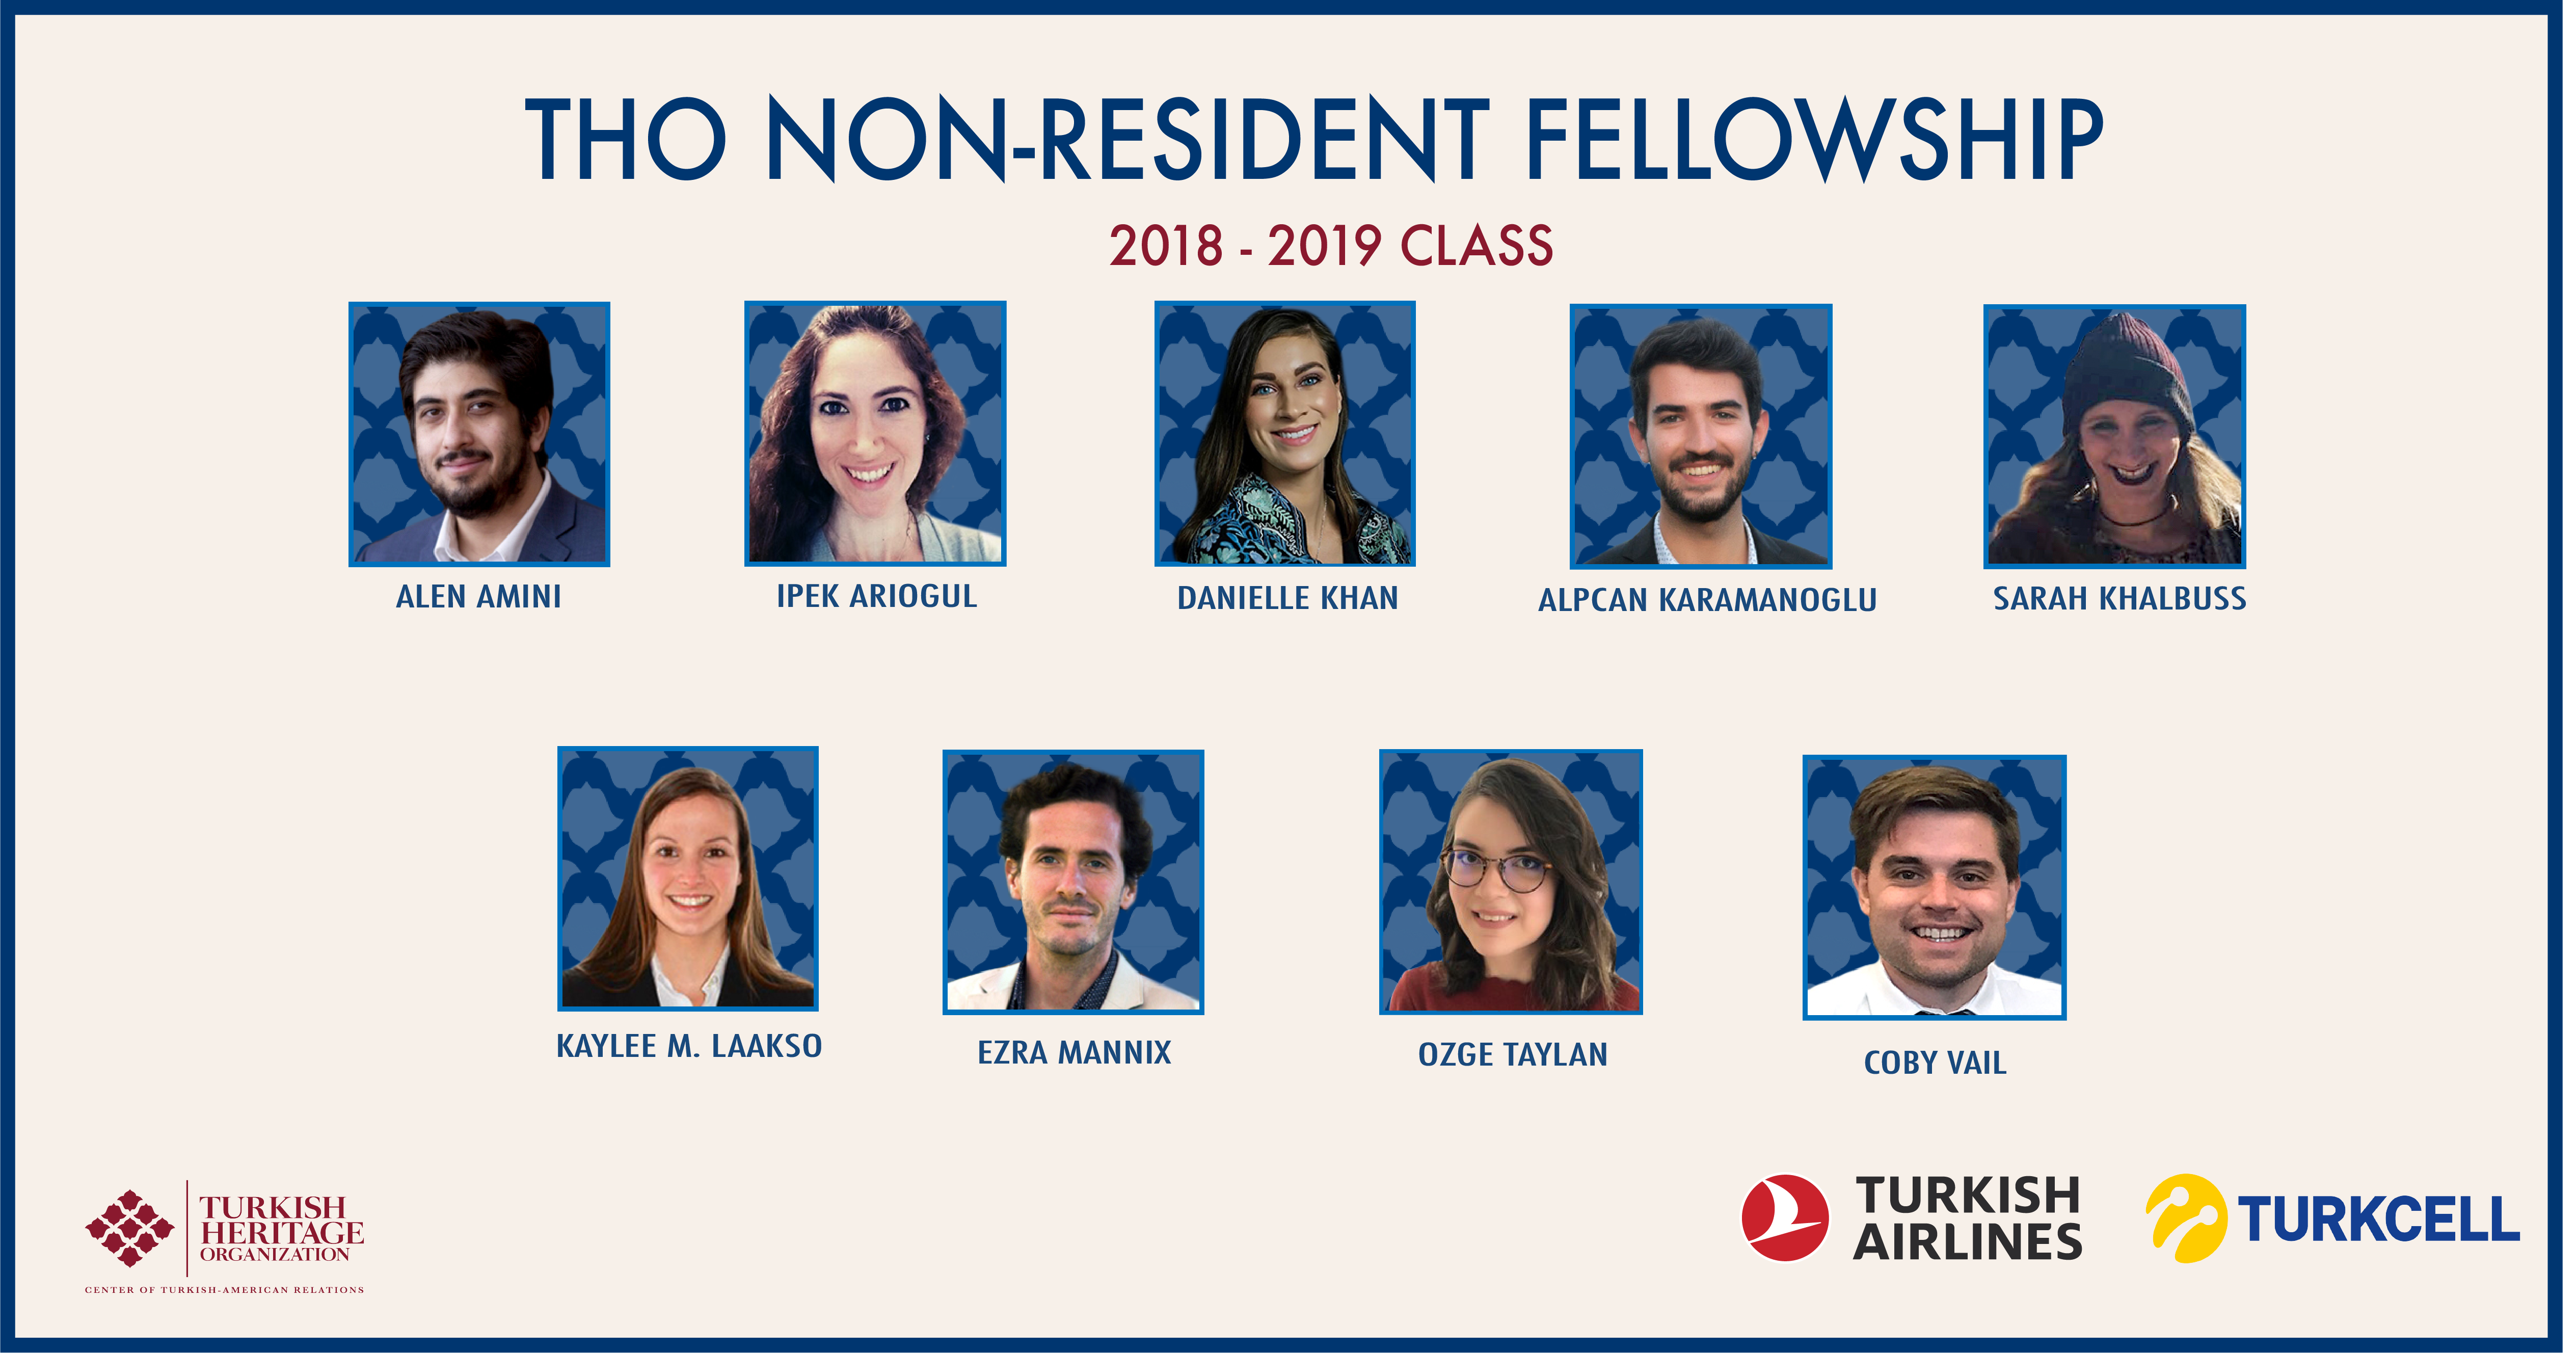 Turkish Heritage Organization is announcing our 2018-2019 non-resident fellows